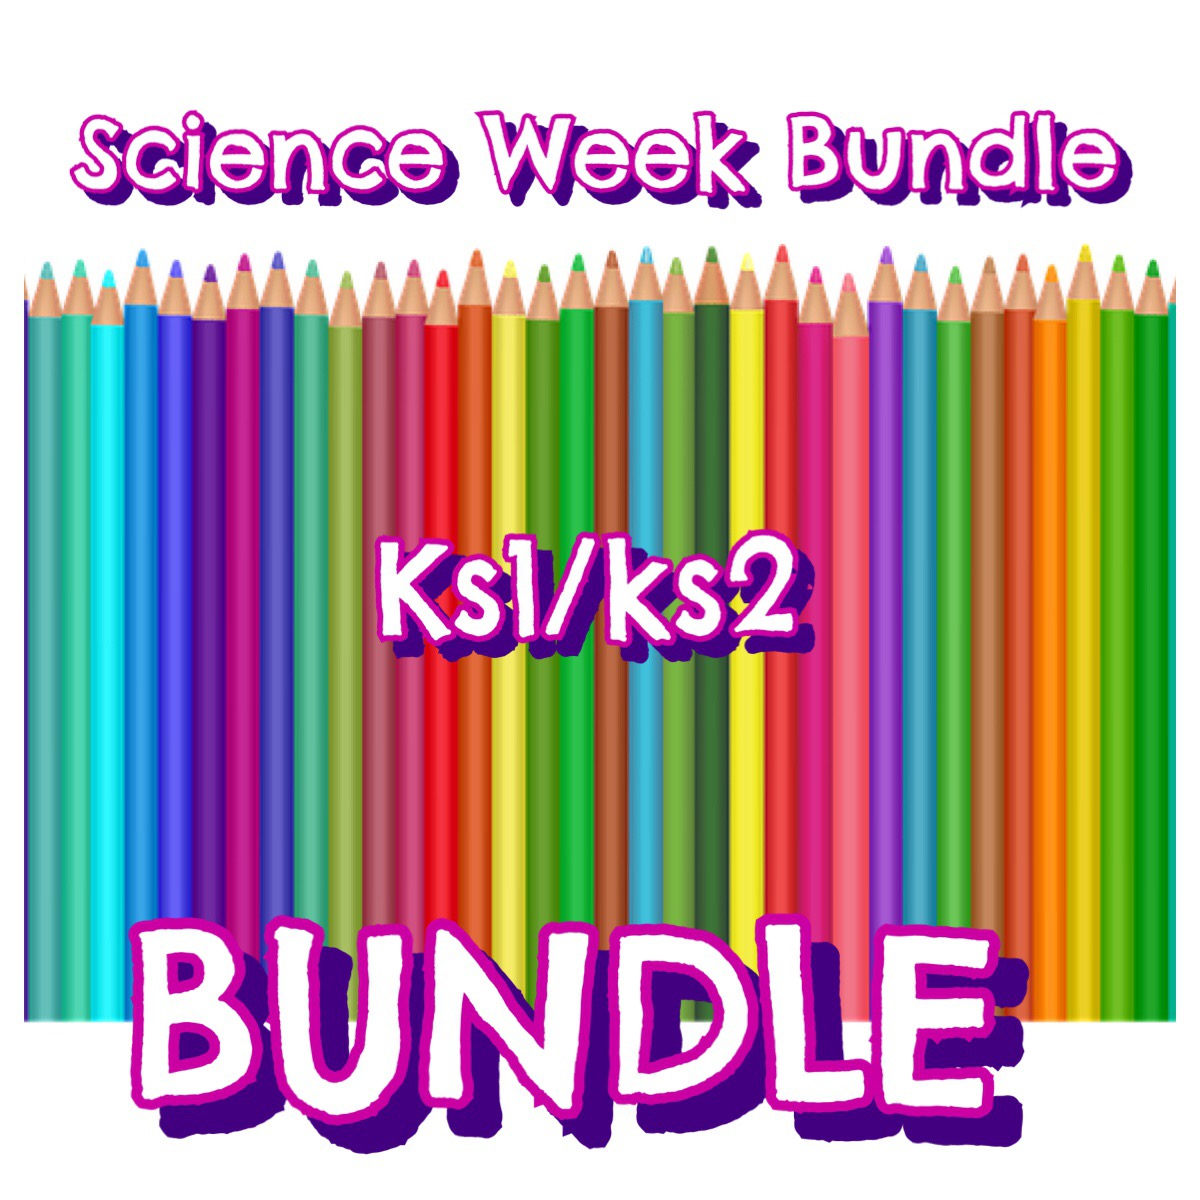 British Science Week Bundle